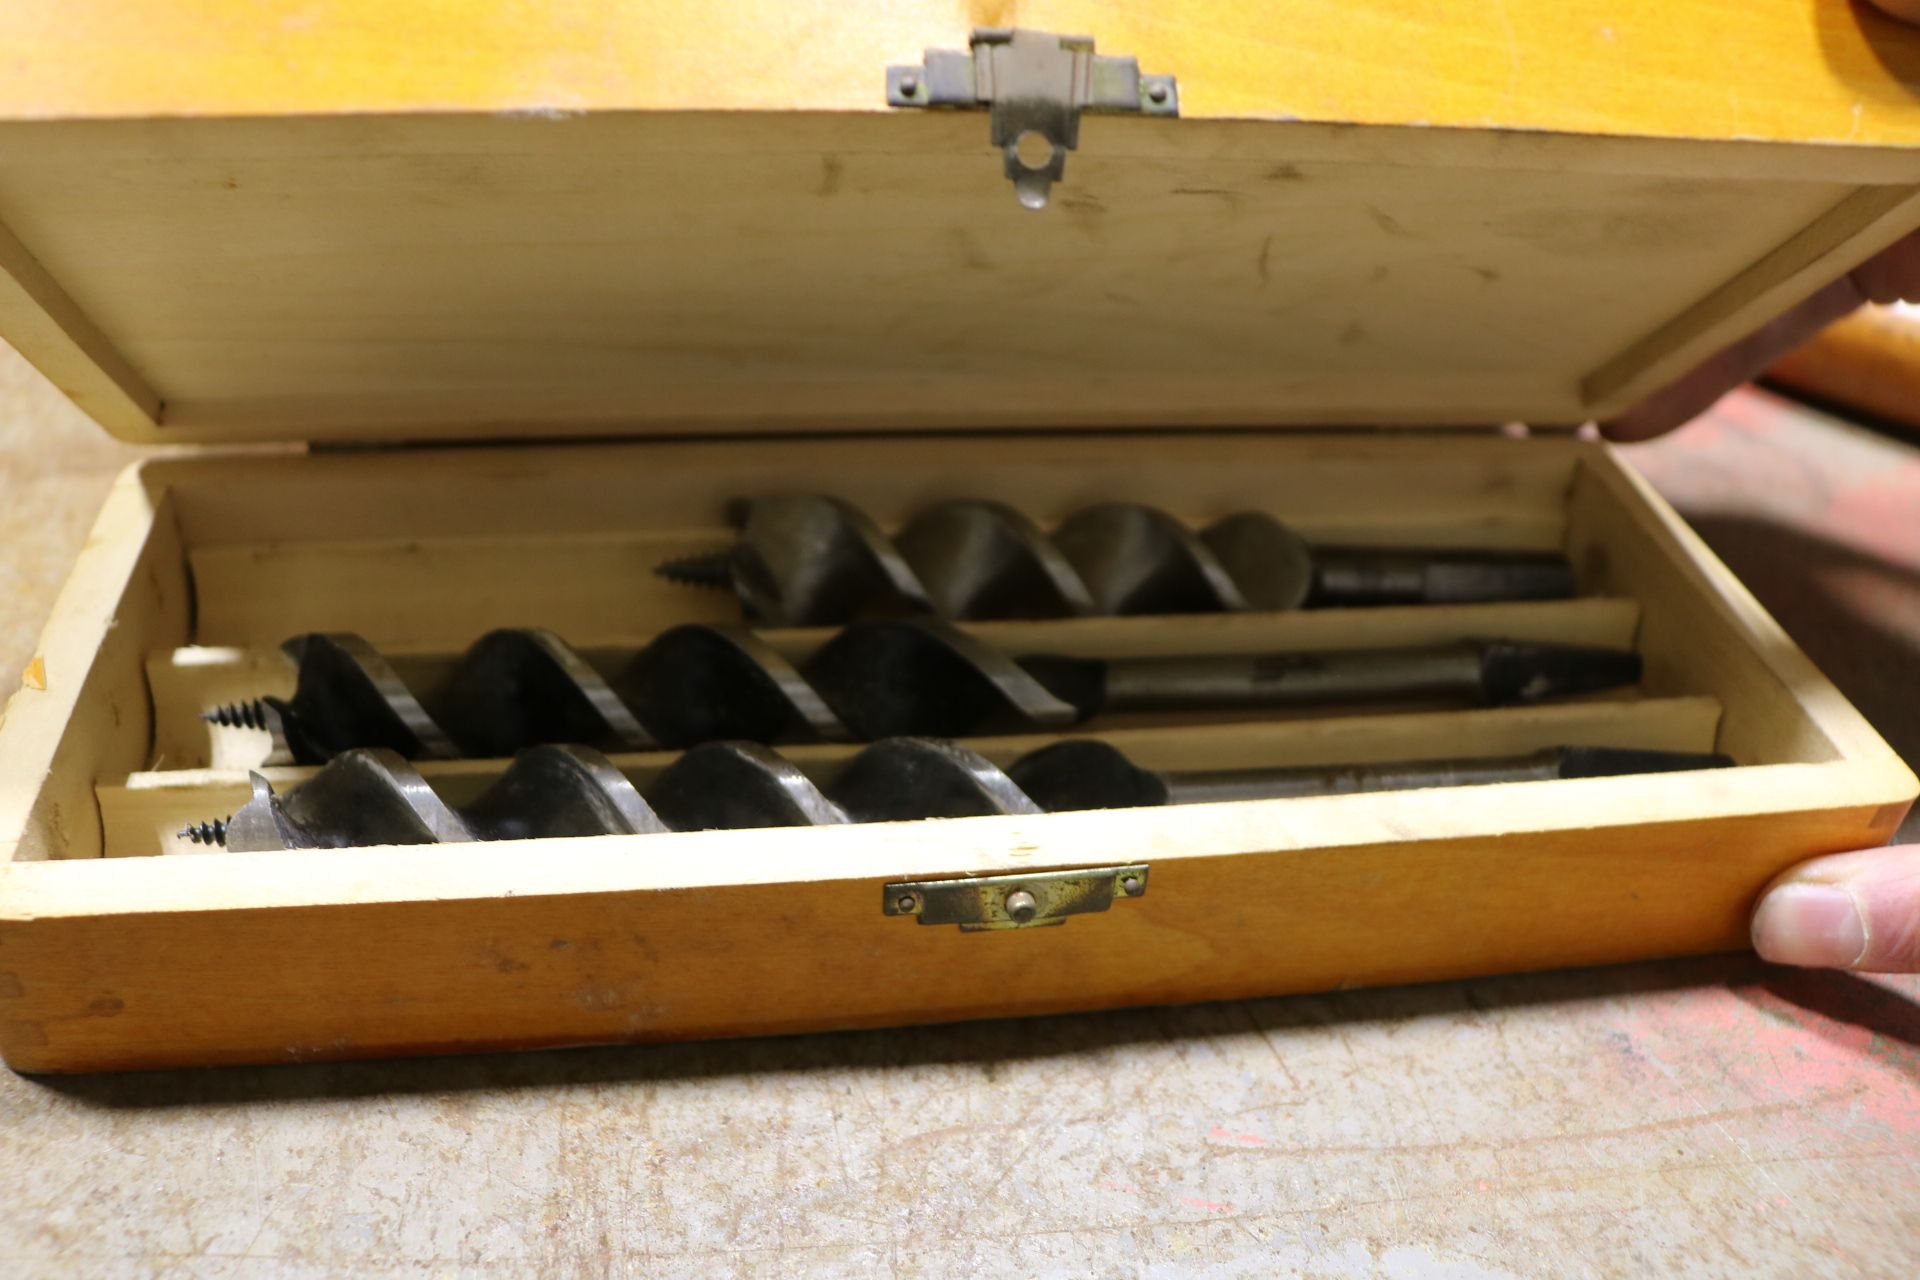 Lot 20 - LOT - WALWORTH-PARMELEE NO. 2 PIPE WRENCH, RIGHT ANGLE AUGER BIT BRACE AND WOOD DRILL SET